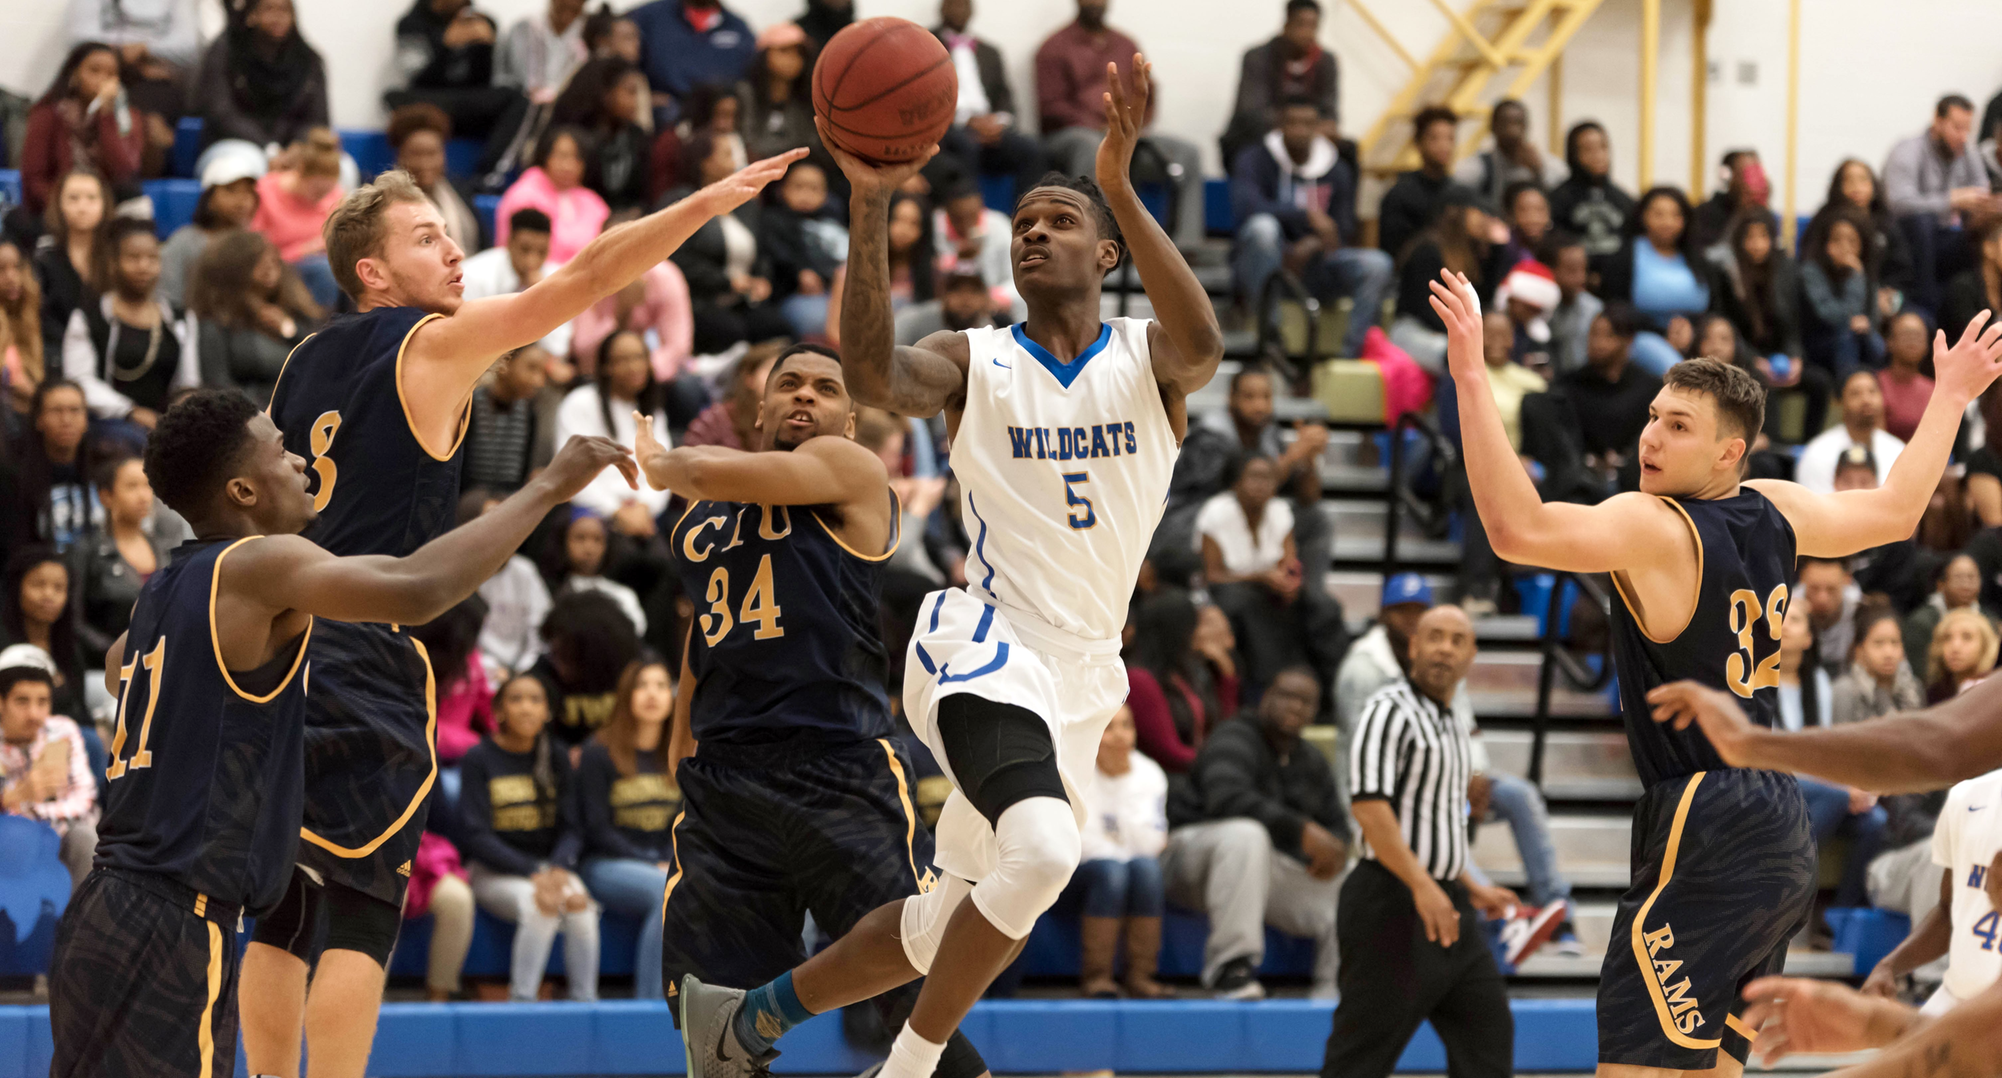 Men's Basketball Splits Final Two Games of South Classic